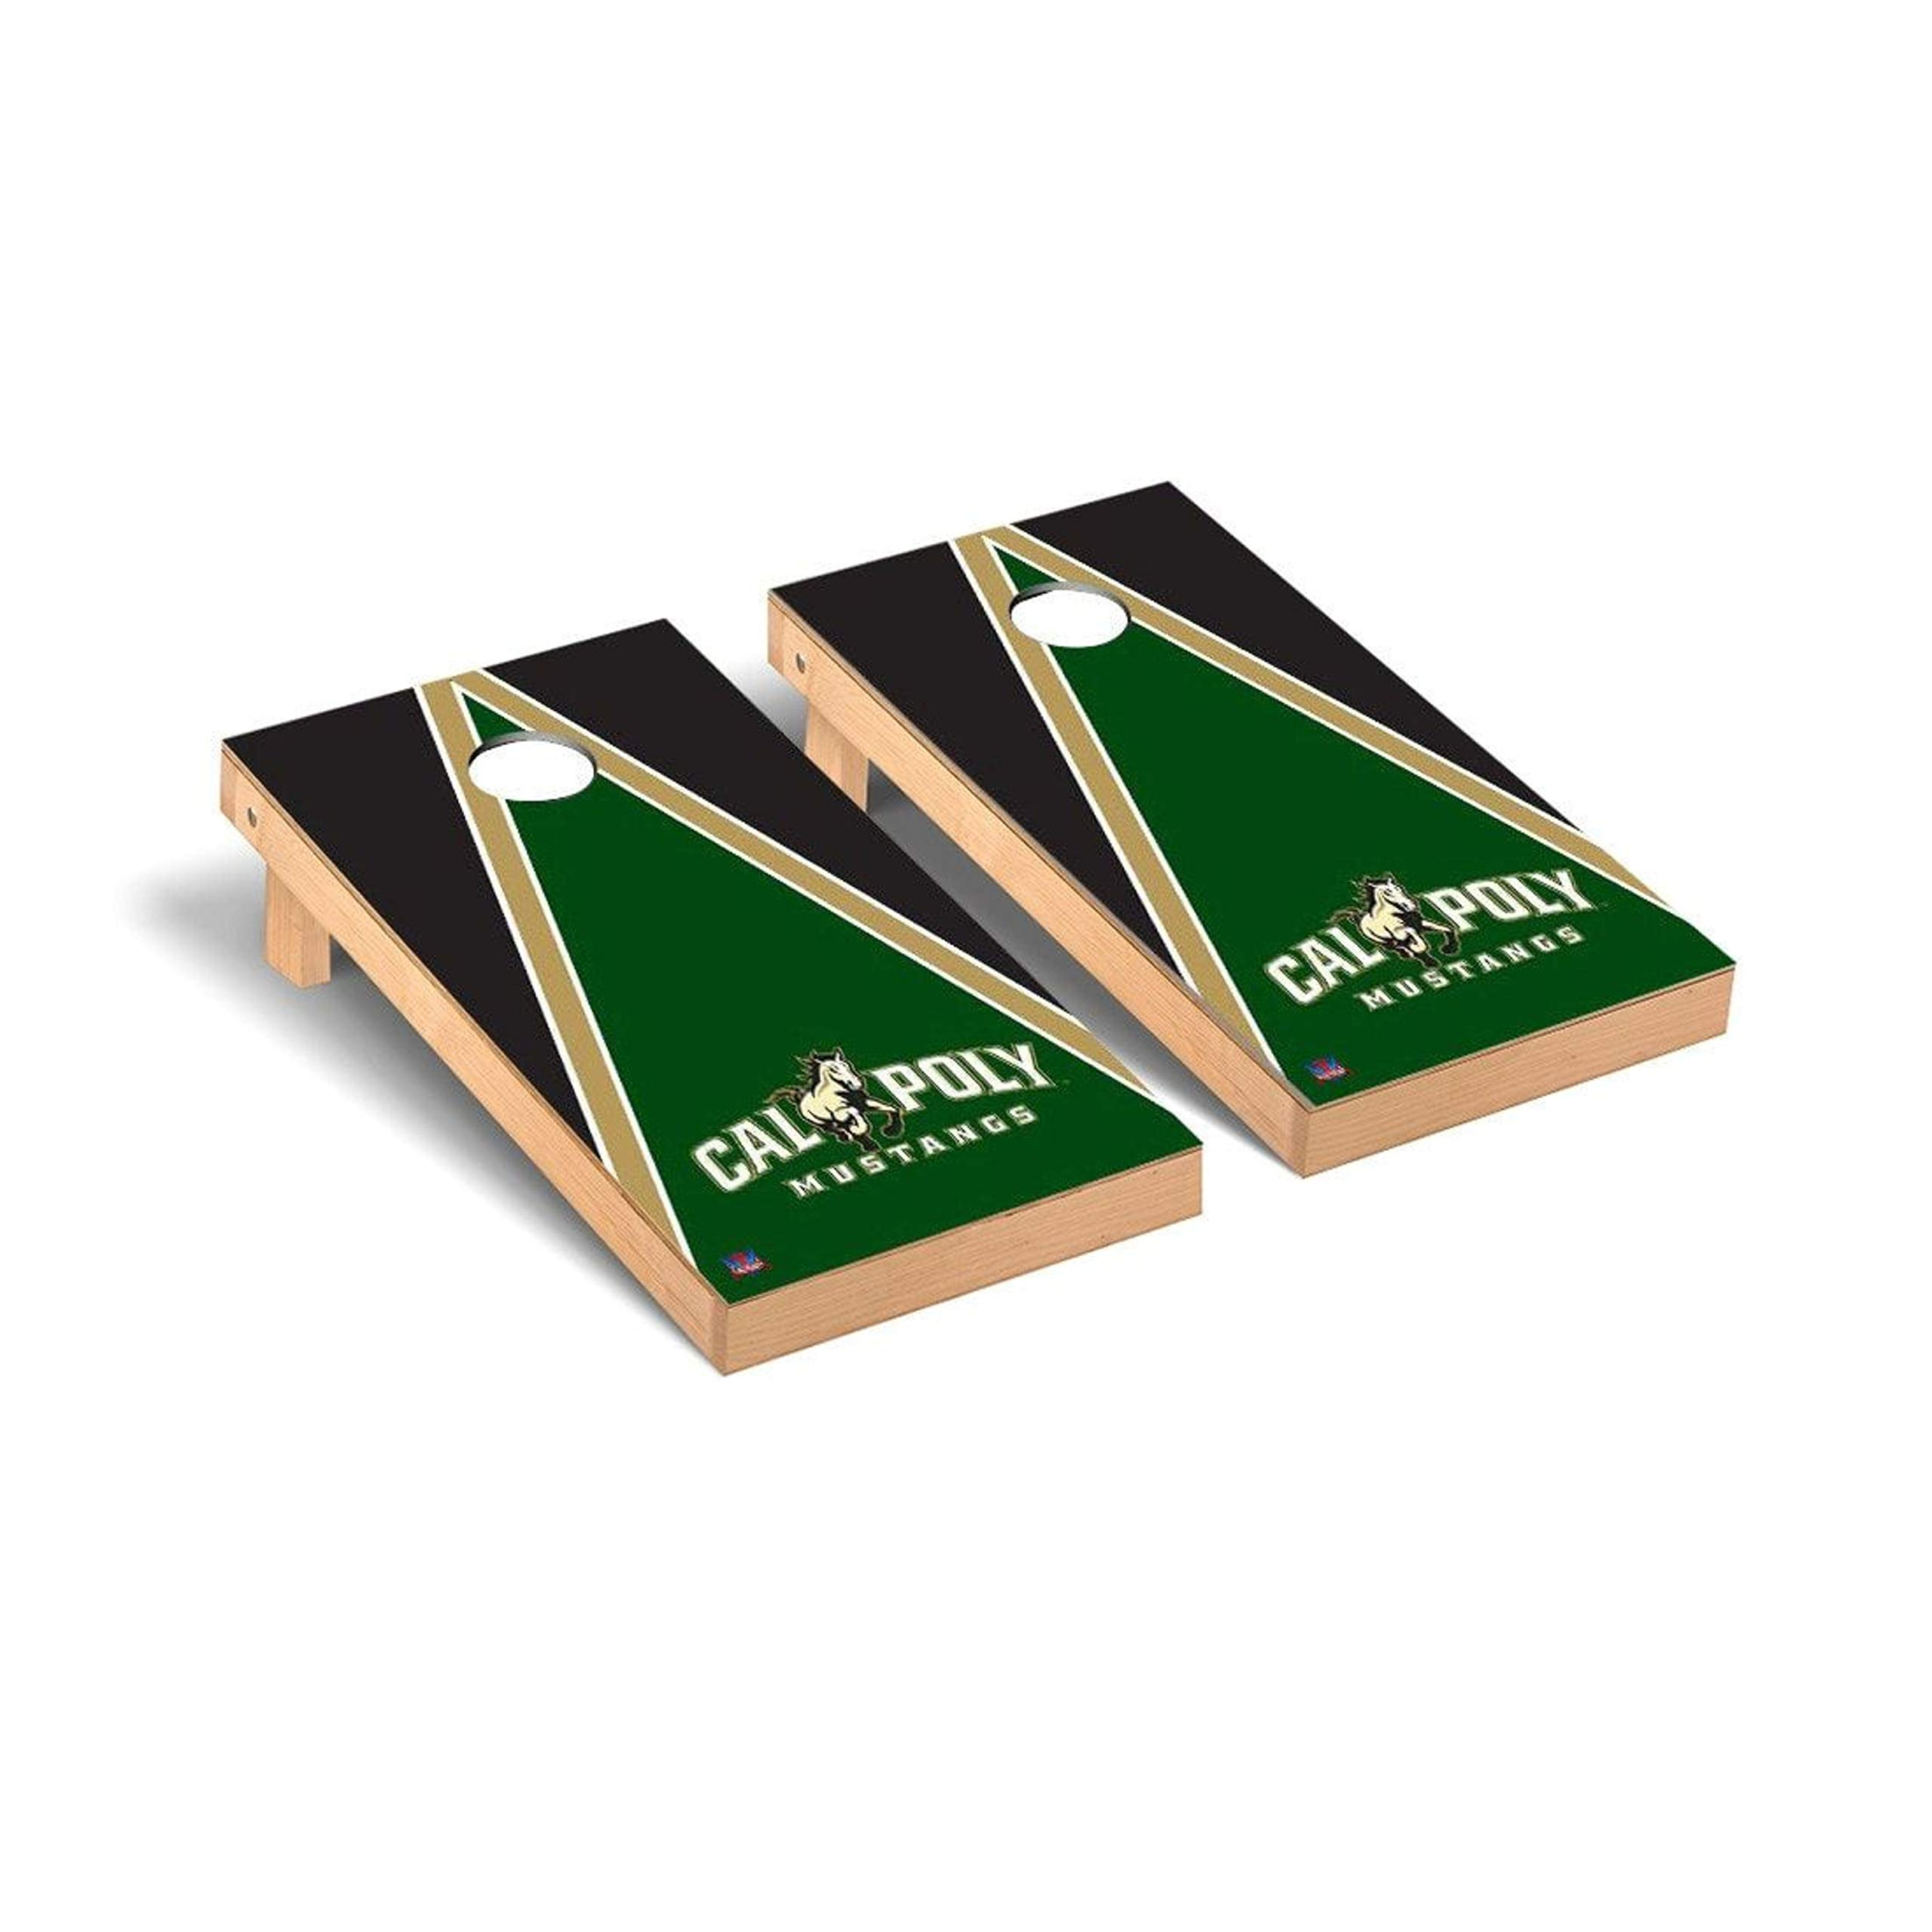 Victory Tailgate Regulation Collegiate NCAA Triangle Series Cornhole Board Set - 2 Boards, 8 Bags - Cal Poly Mustangs by Victory Tailgate